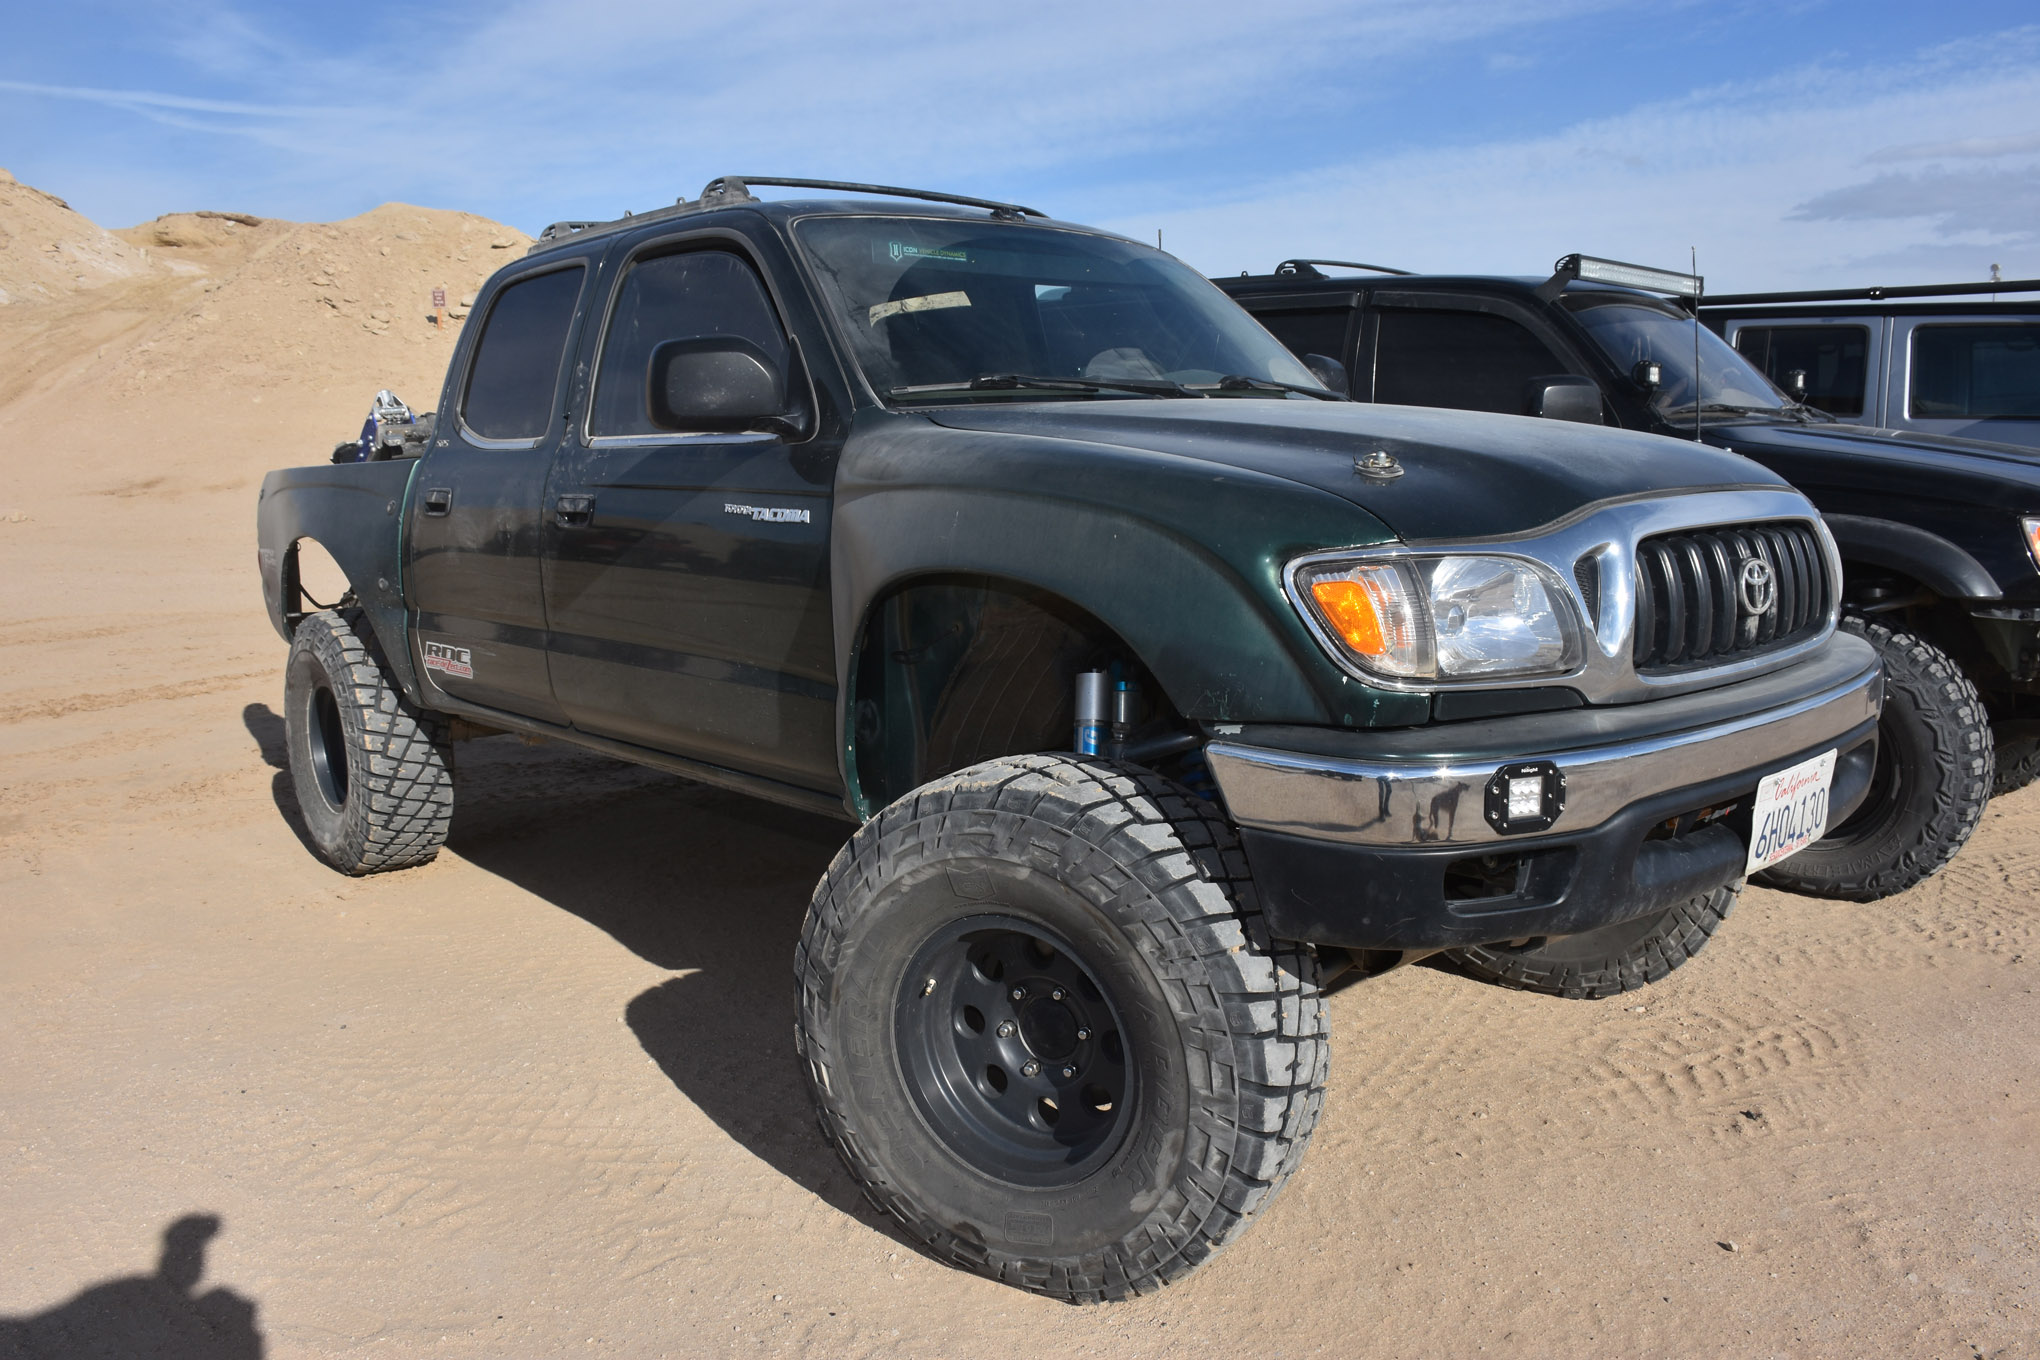 We have always liked the looks and utility of the first-gen Toyota Tacoma double-cab trucks. We saw this one near the training center and had to snap a pic. With just the right balance of go-fast goodies, 35-inch tires, and a couple of lockers, this thing could be a ton of fun just about anywhere in the desert.